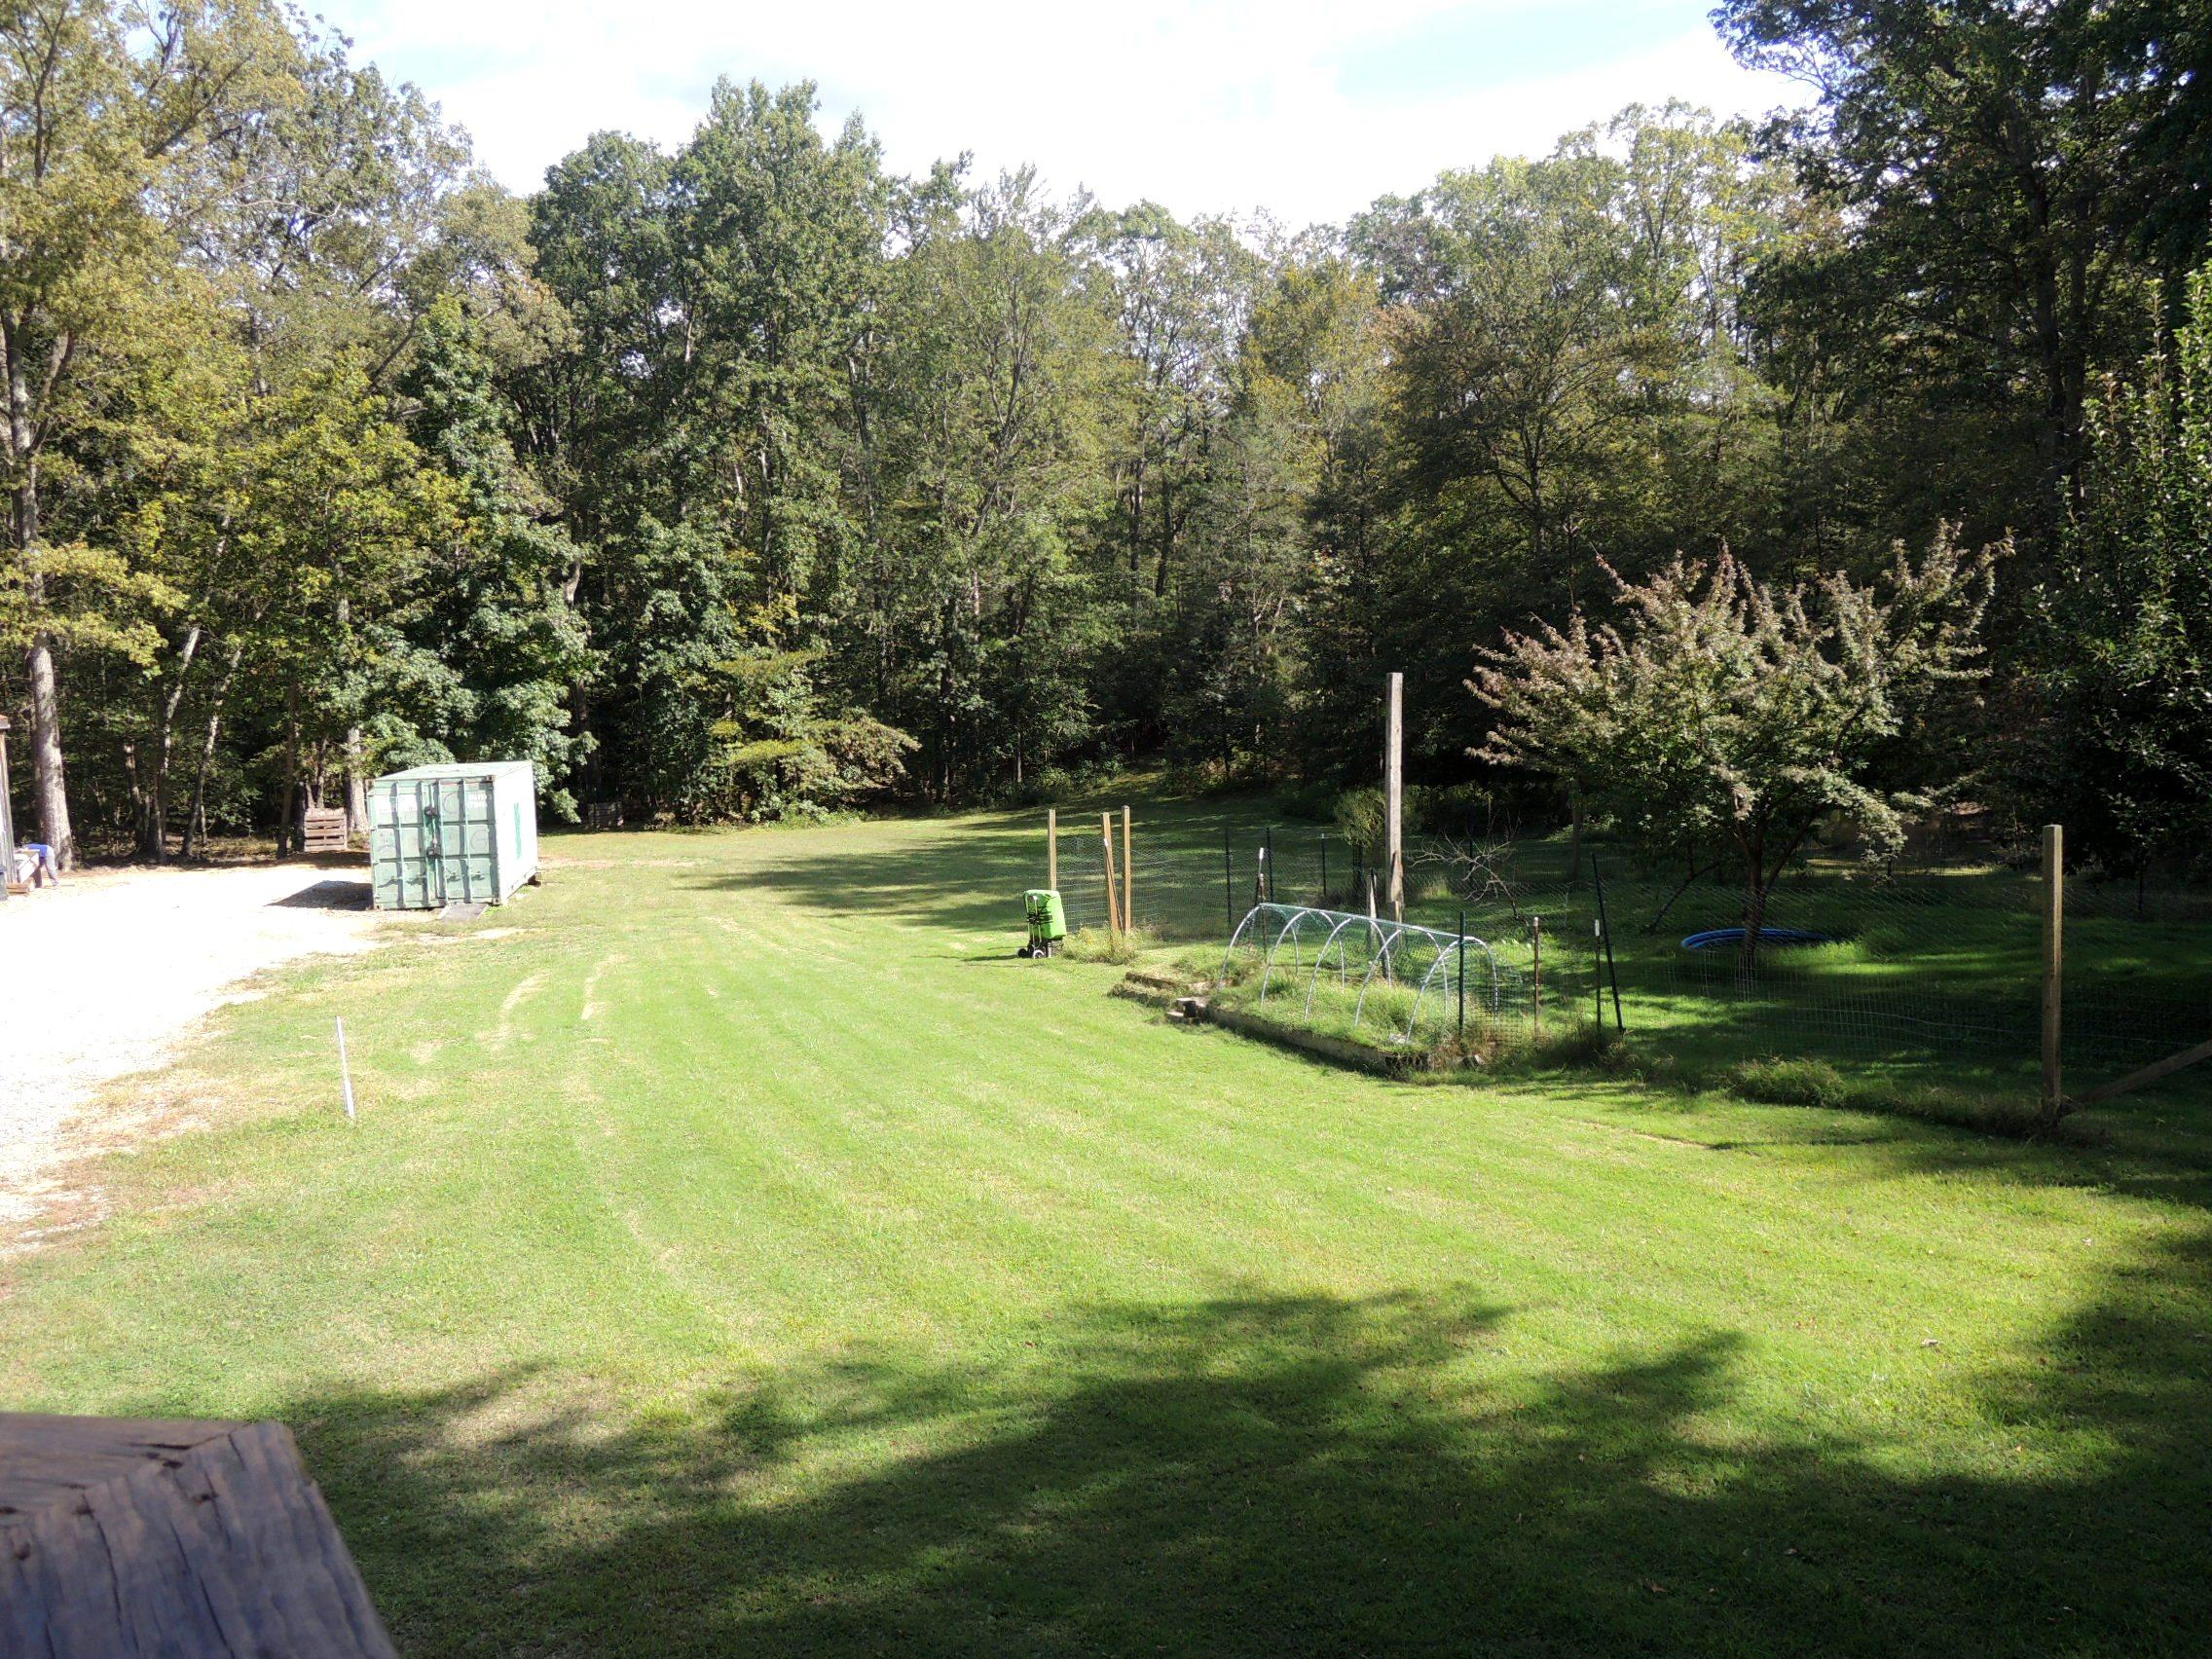 7220 Whitetail Place in La Plata Maryland is a Horse Property for Sale in Southrn Maryland by Marie Lally of O'Brien Realty